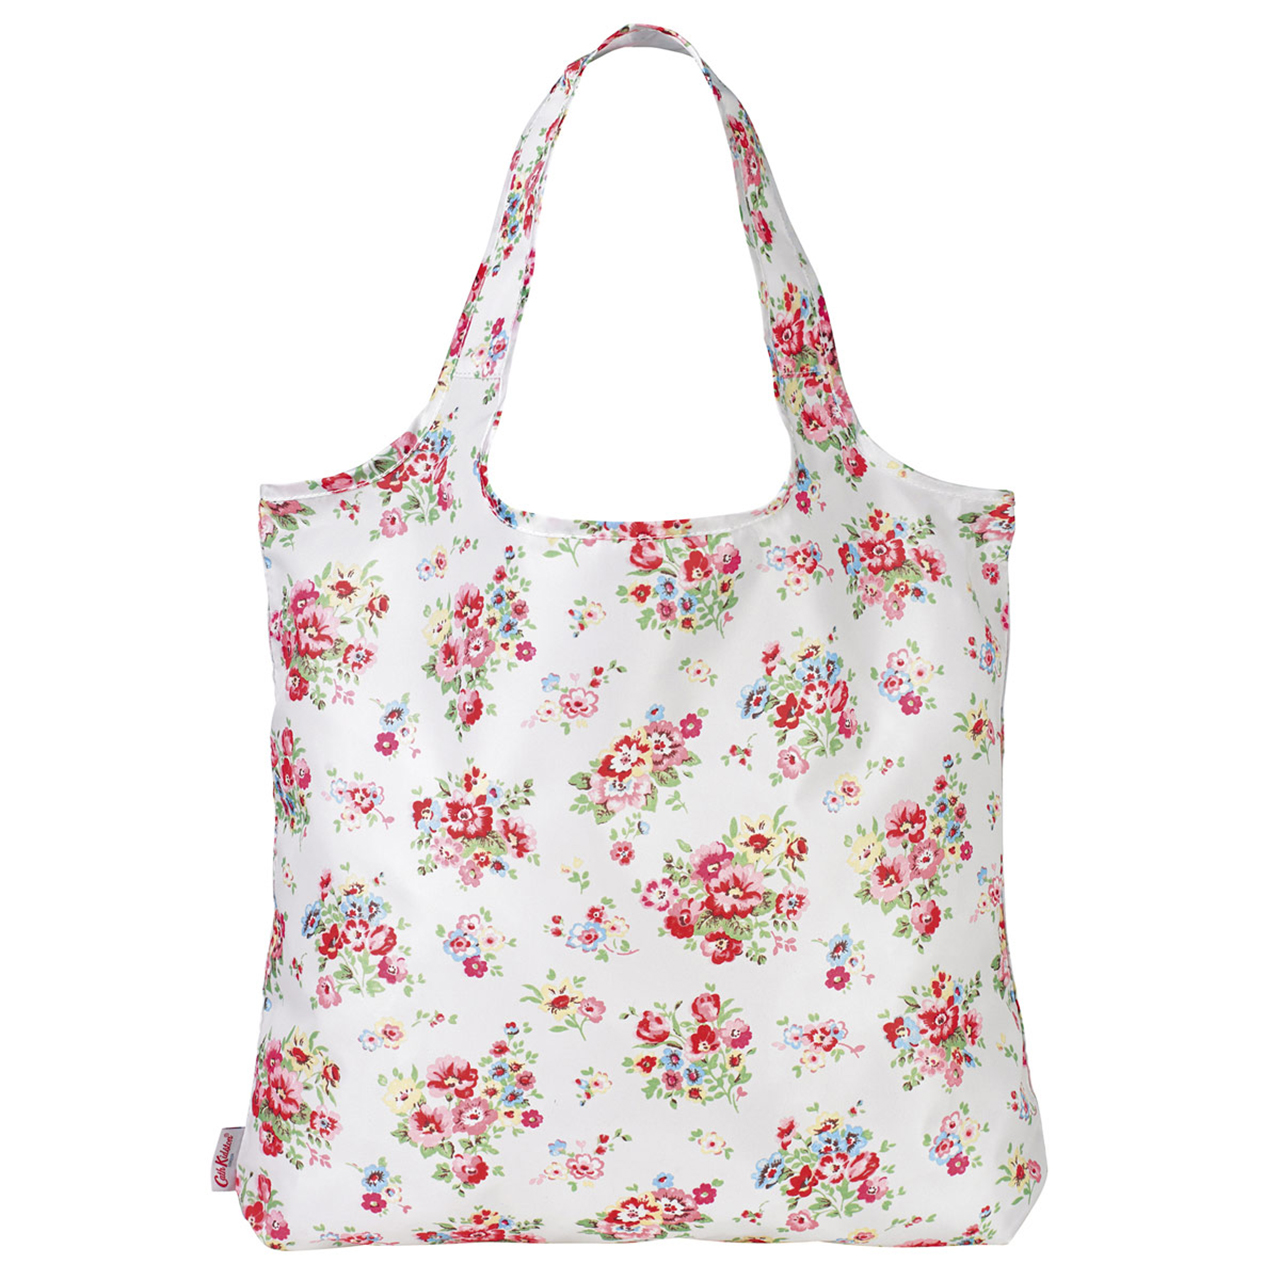 A foldaway shopper from the British brand Cath Kidston. (Cath Kidston)